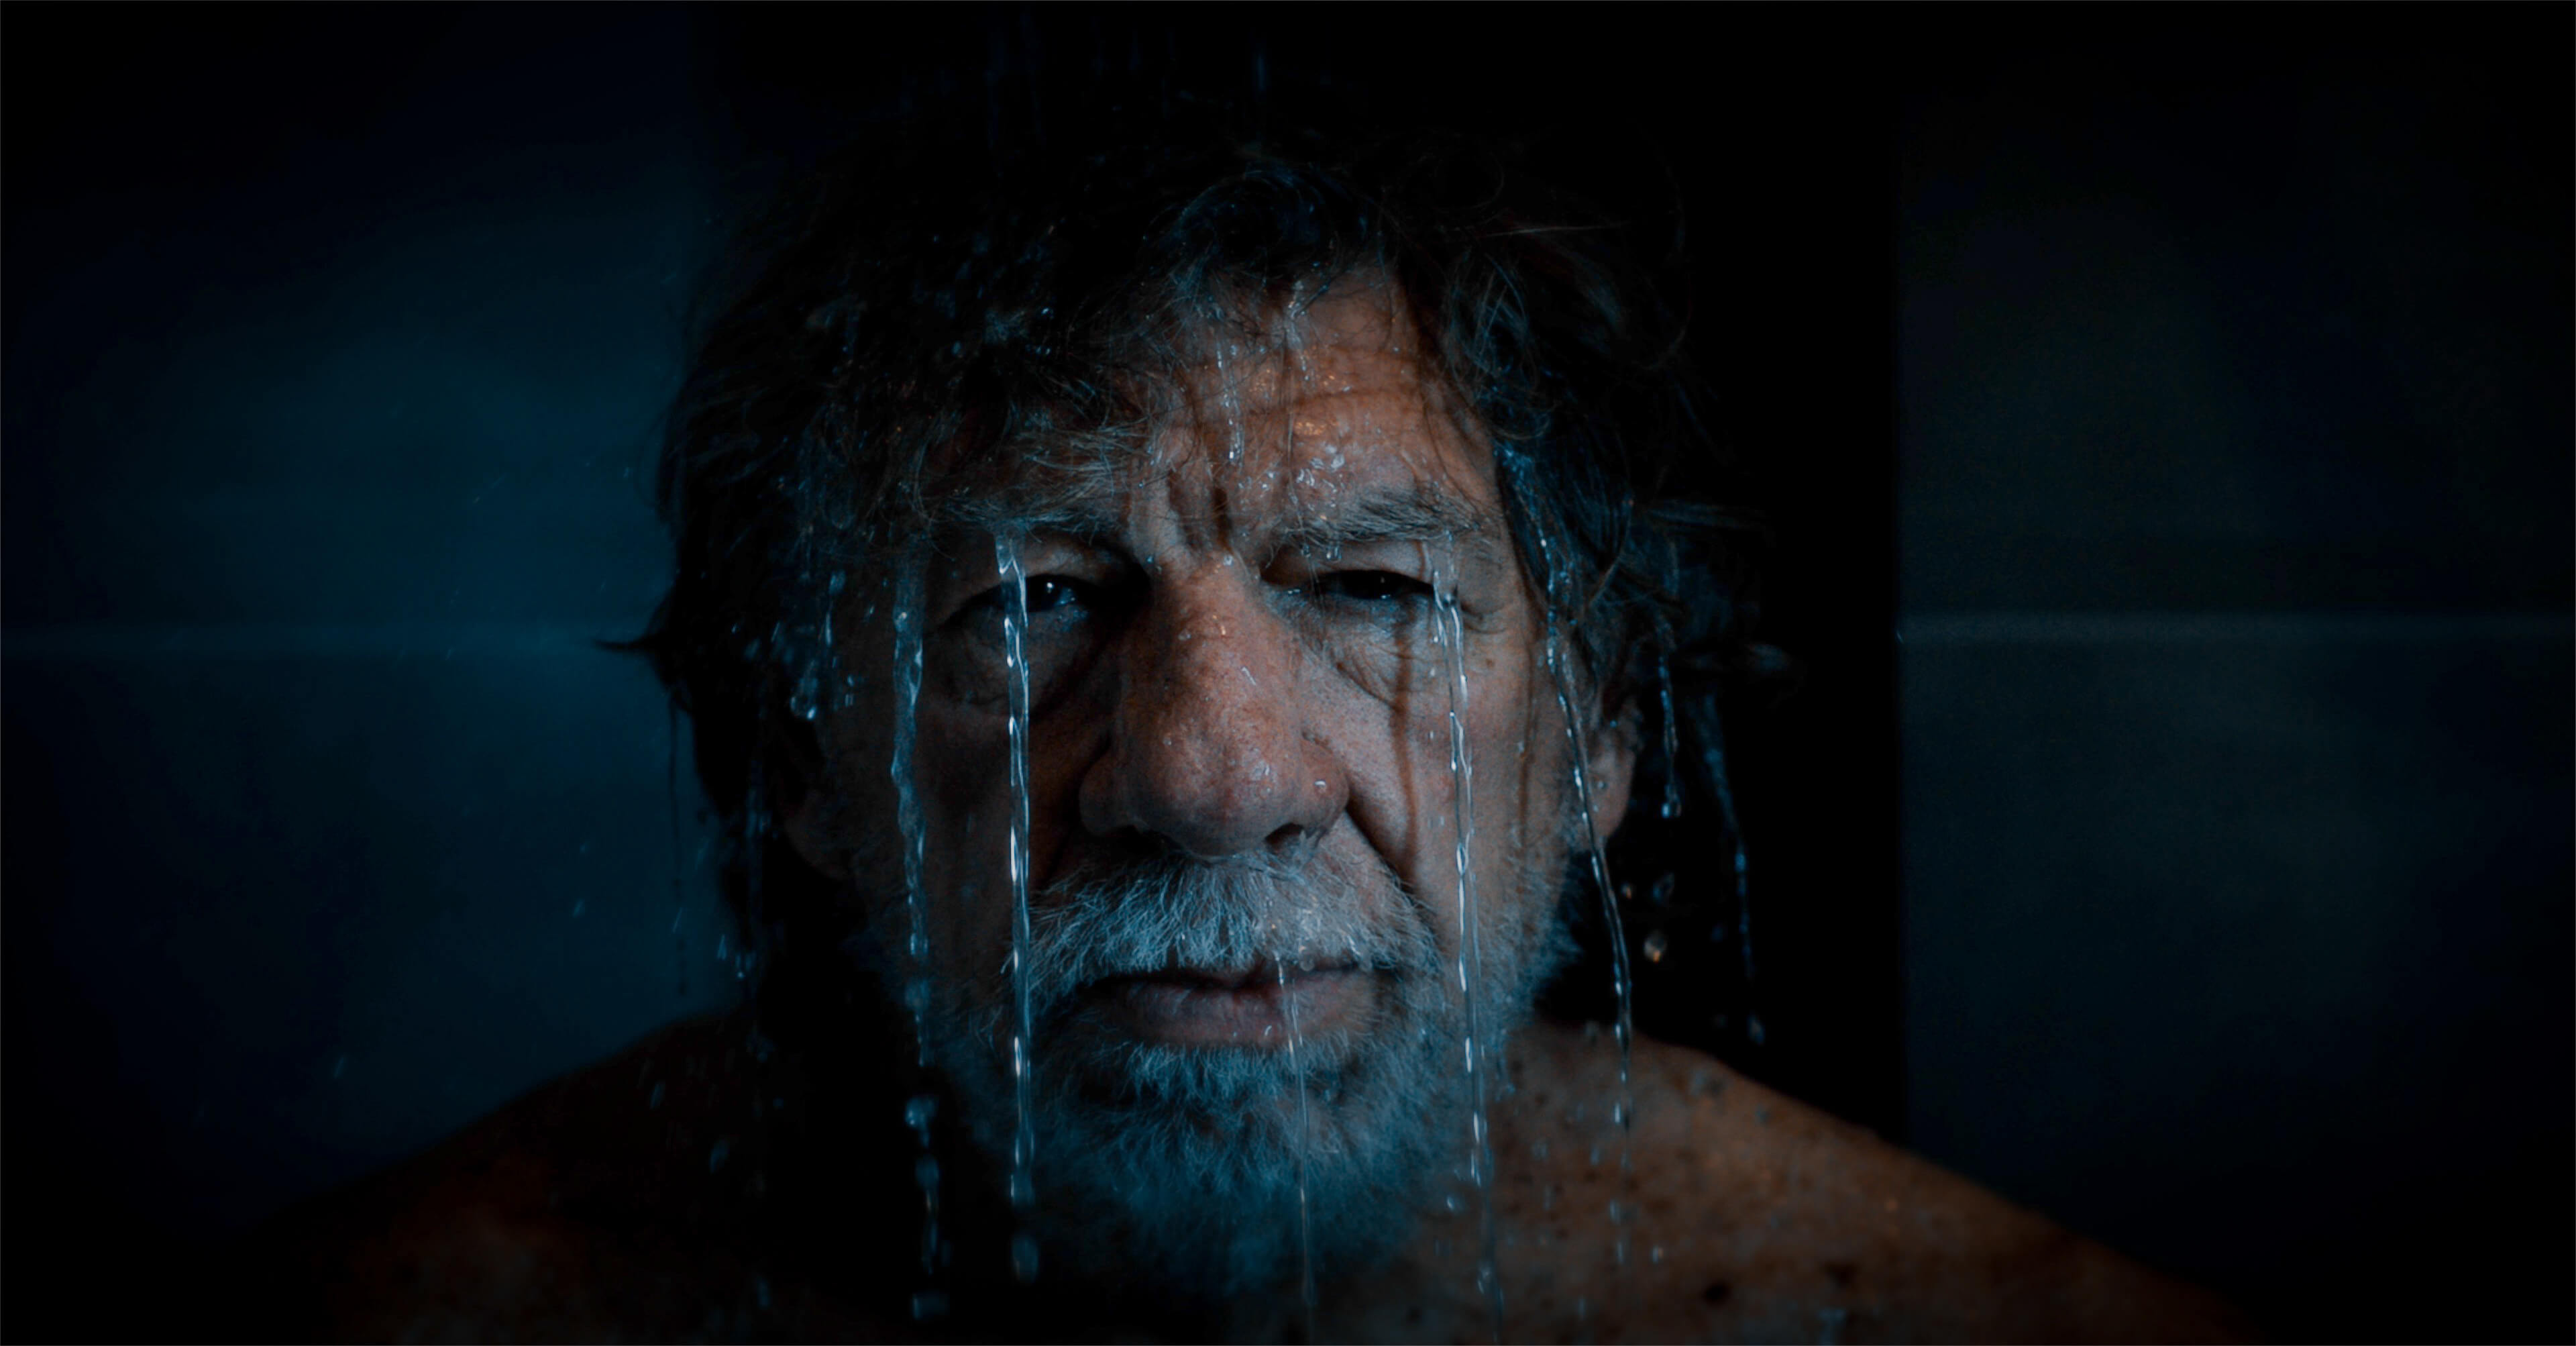 muse shower image 1 - Trailer For Amazon's Psychological Horror Film MUSE